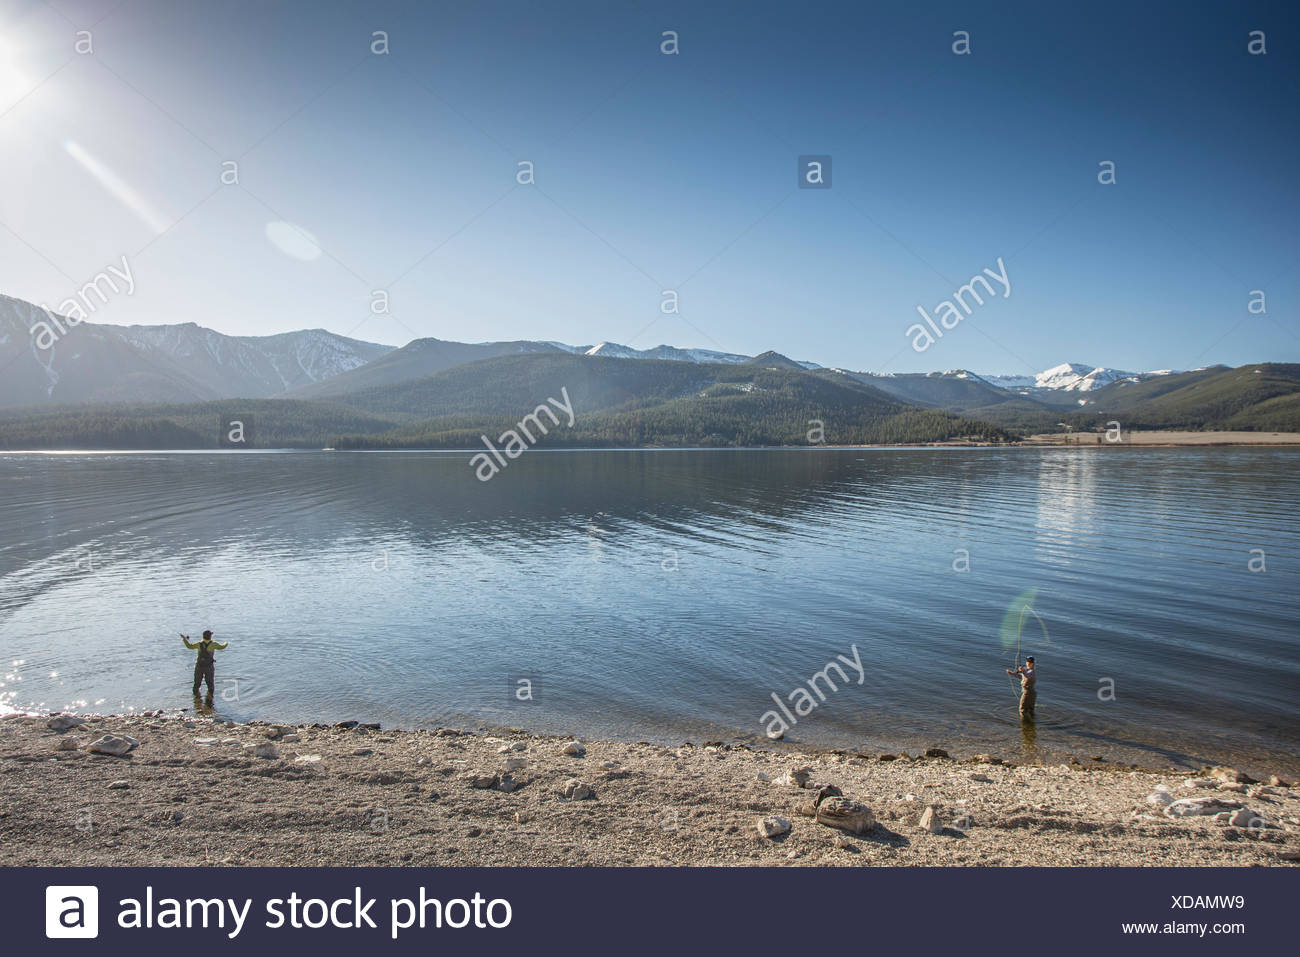 Two women cast from the shore while fly fishing on Montana's Hebgen Lake. - Stock Image